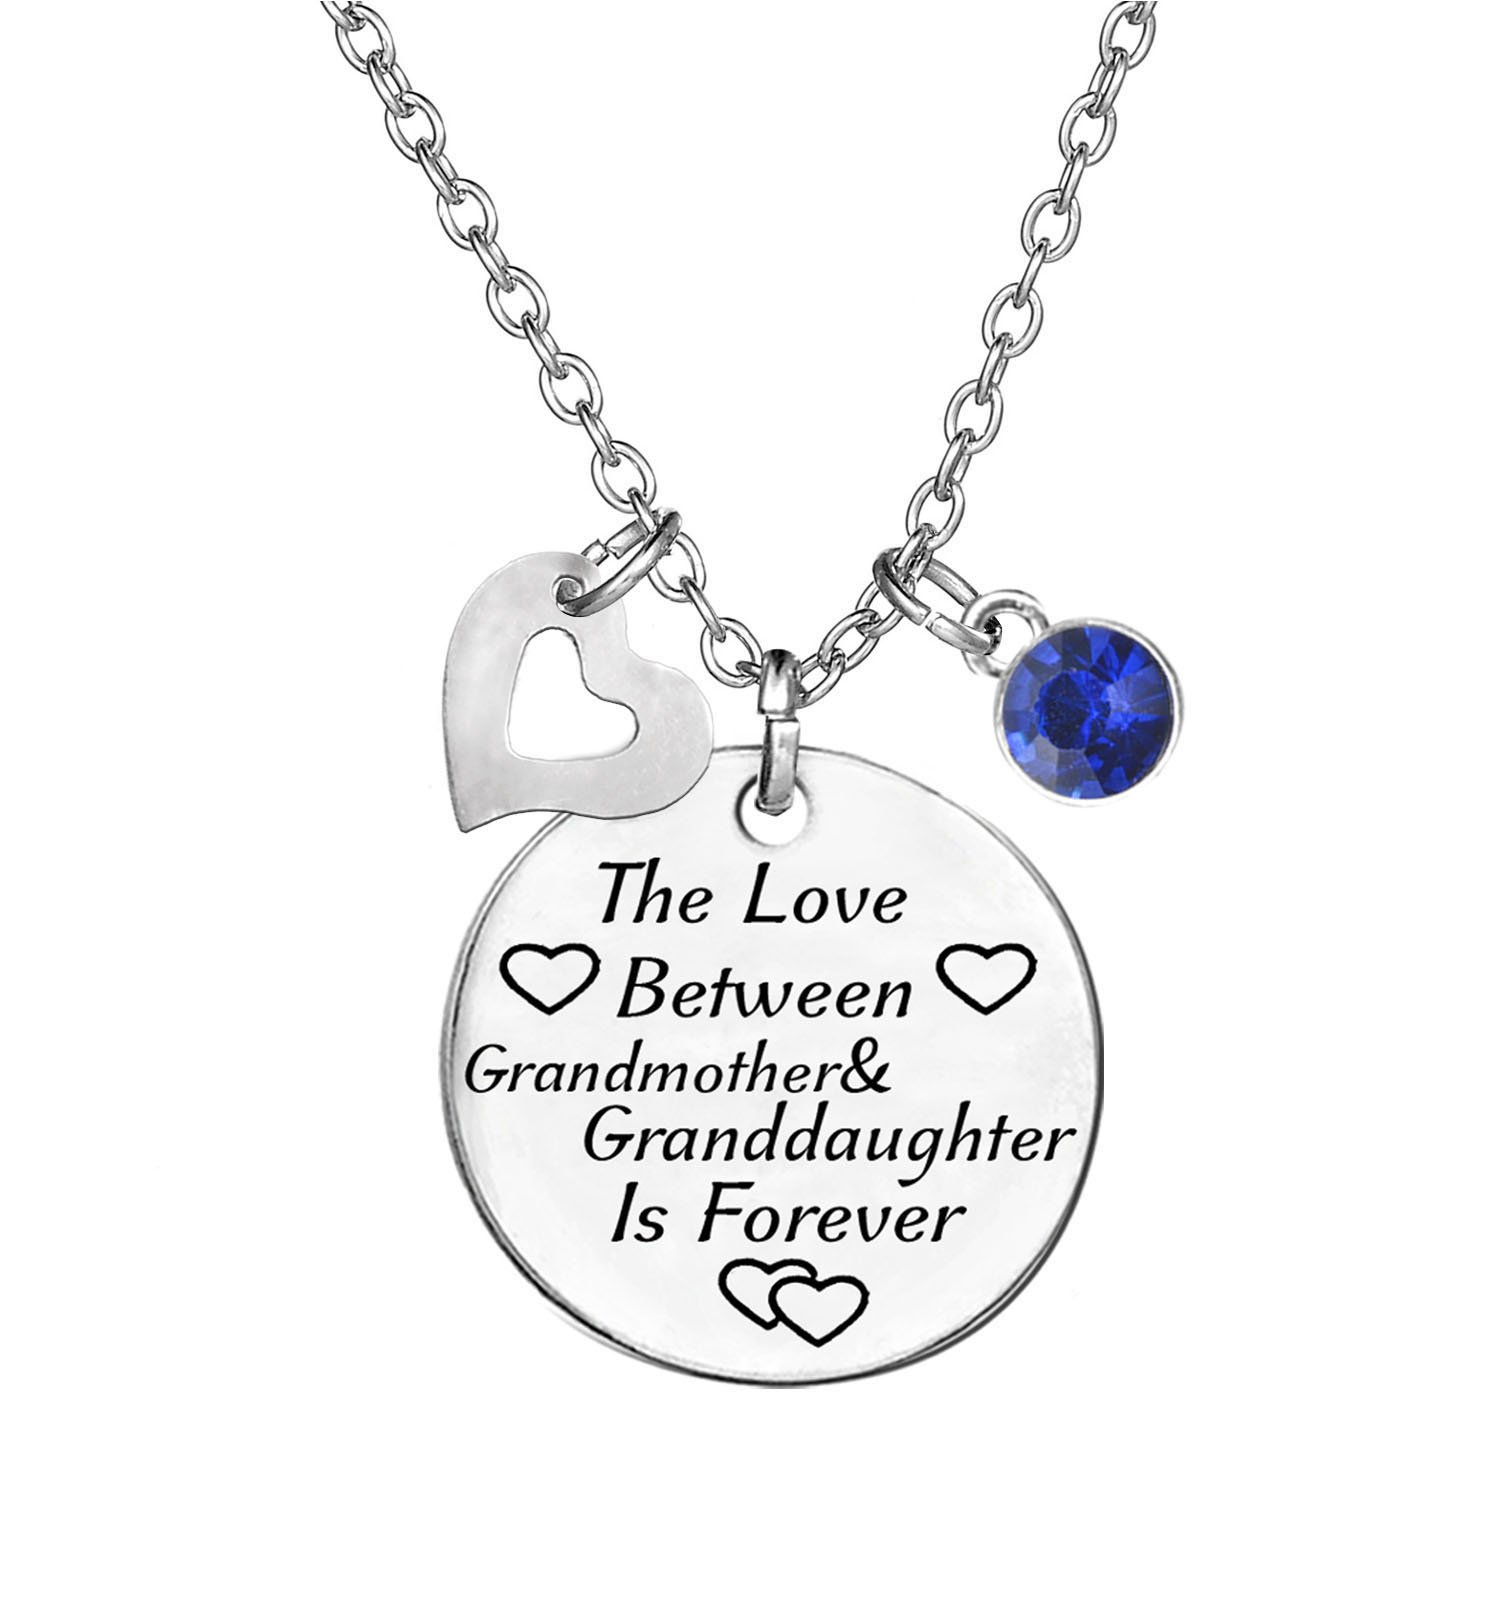 TISDA Birthstone Crystals Necklace,The Love between Grandmother and Granddaughter is Forever Necklace Family Jewelry Christmas Gift (September)